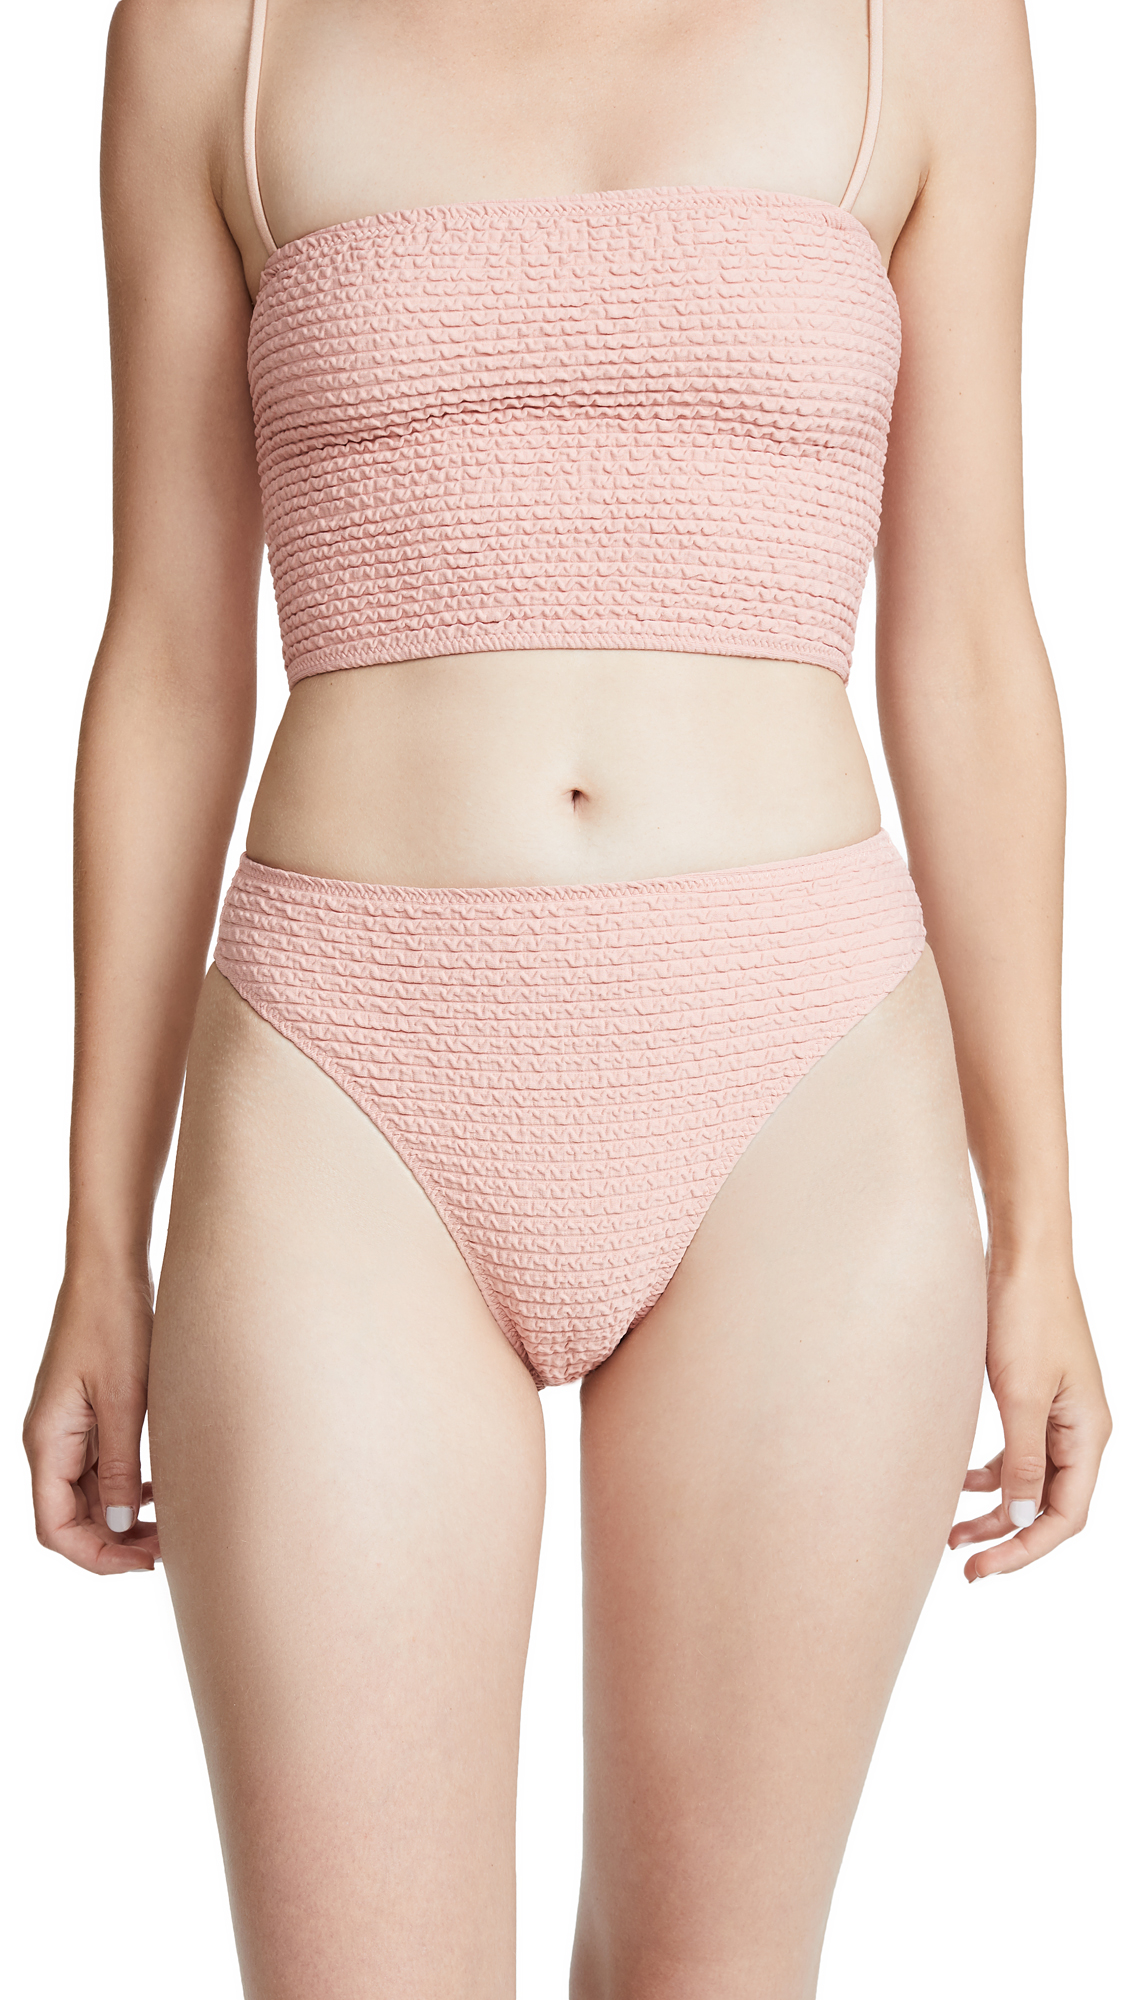 SAME SWIM The Cindy High Rise Bottoms in Textured Blush